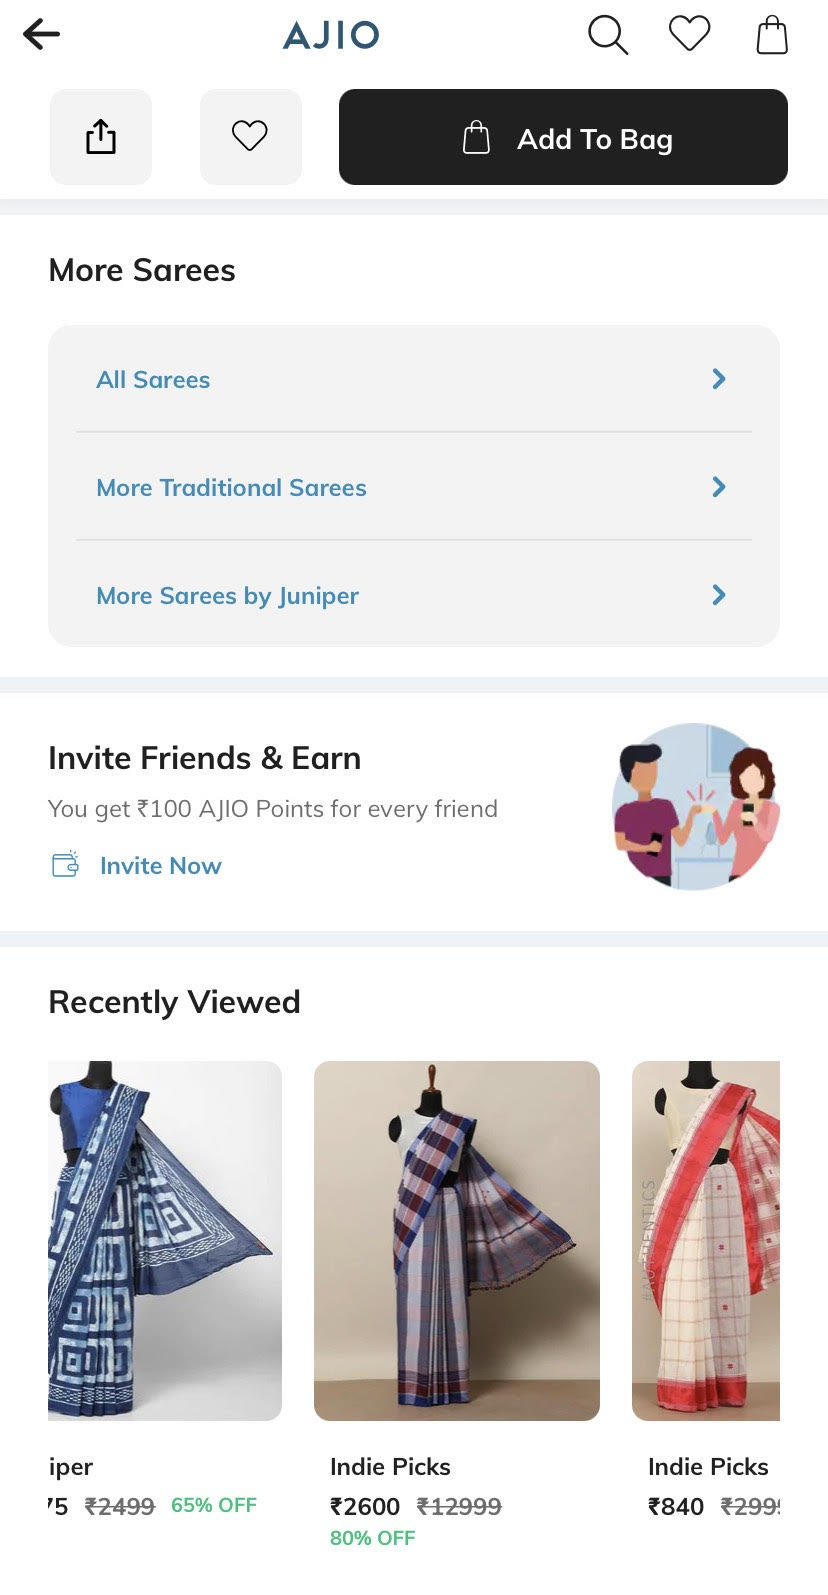 example of a data saving feature on mobile product pages